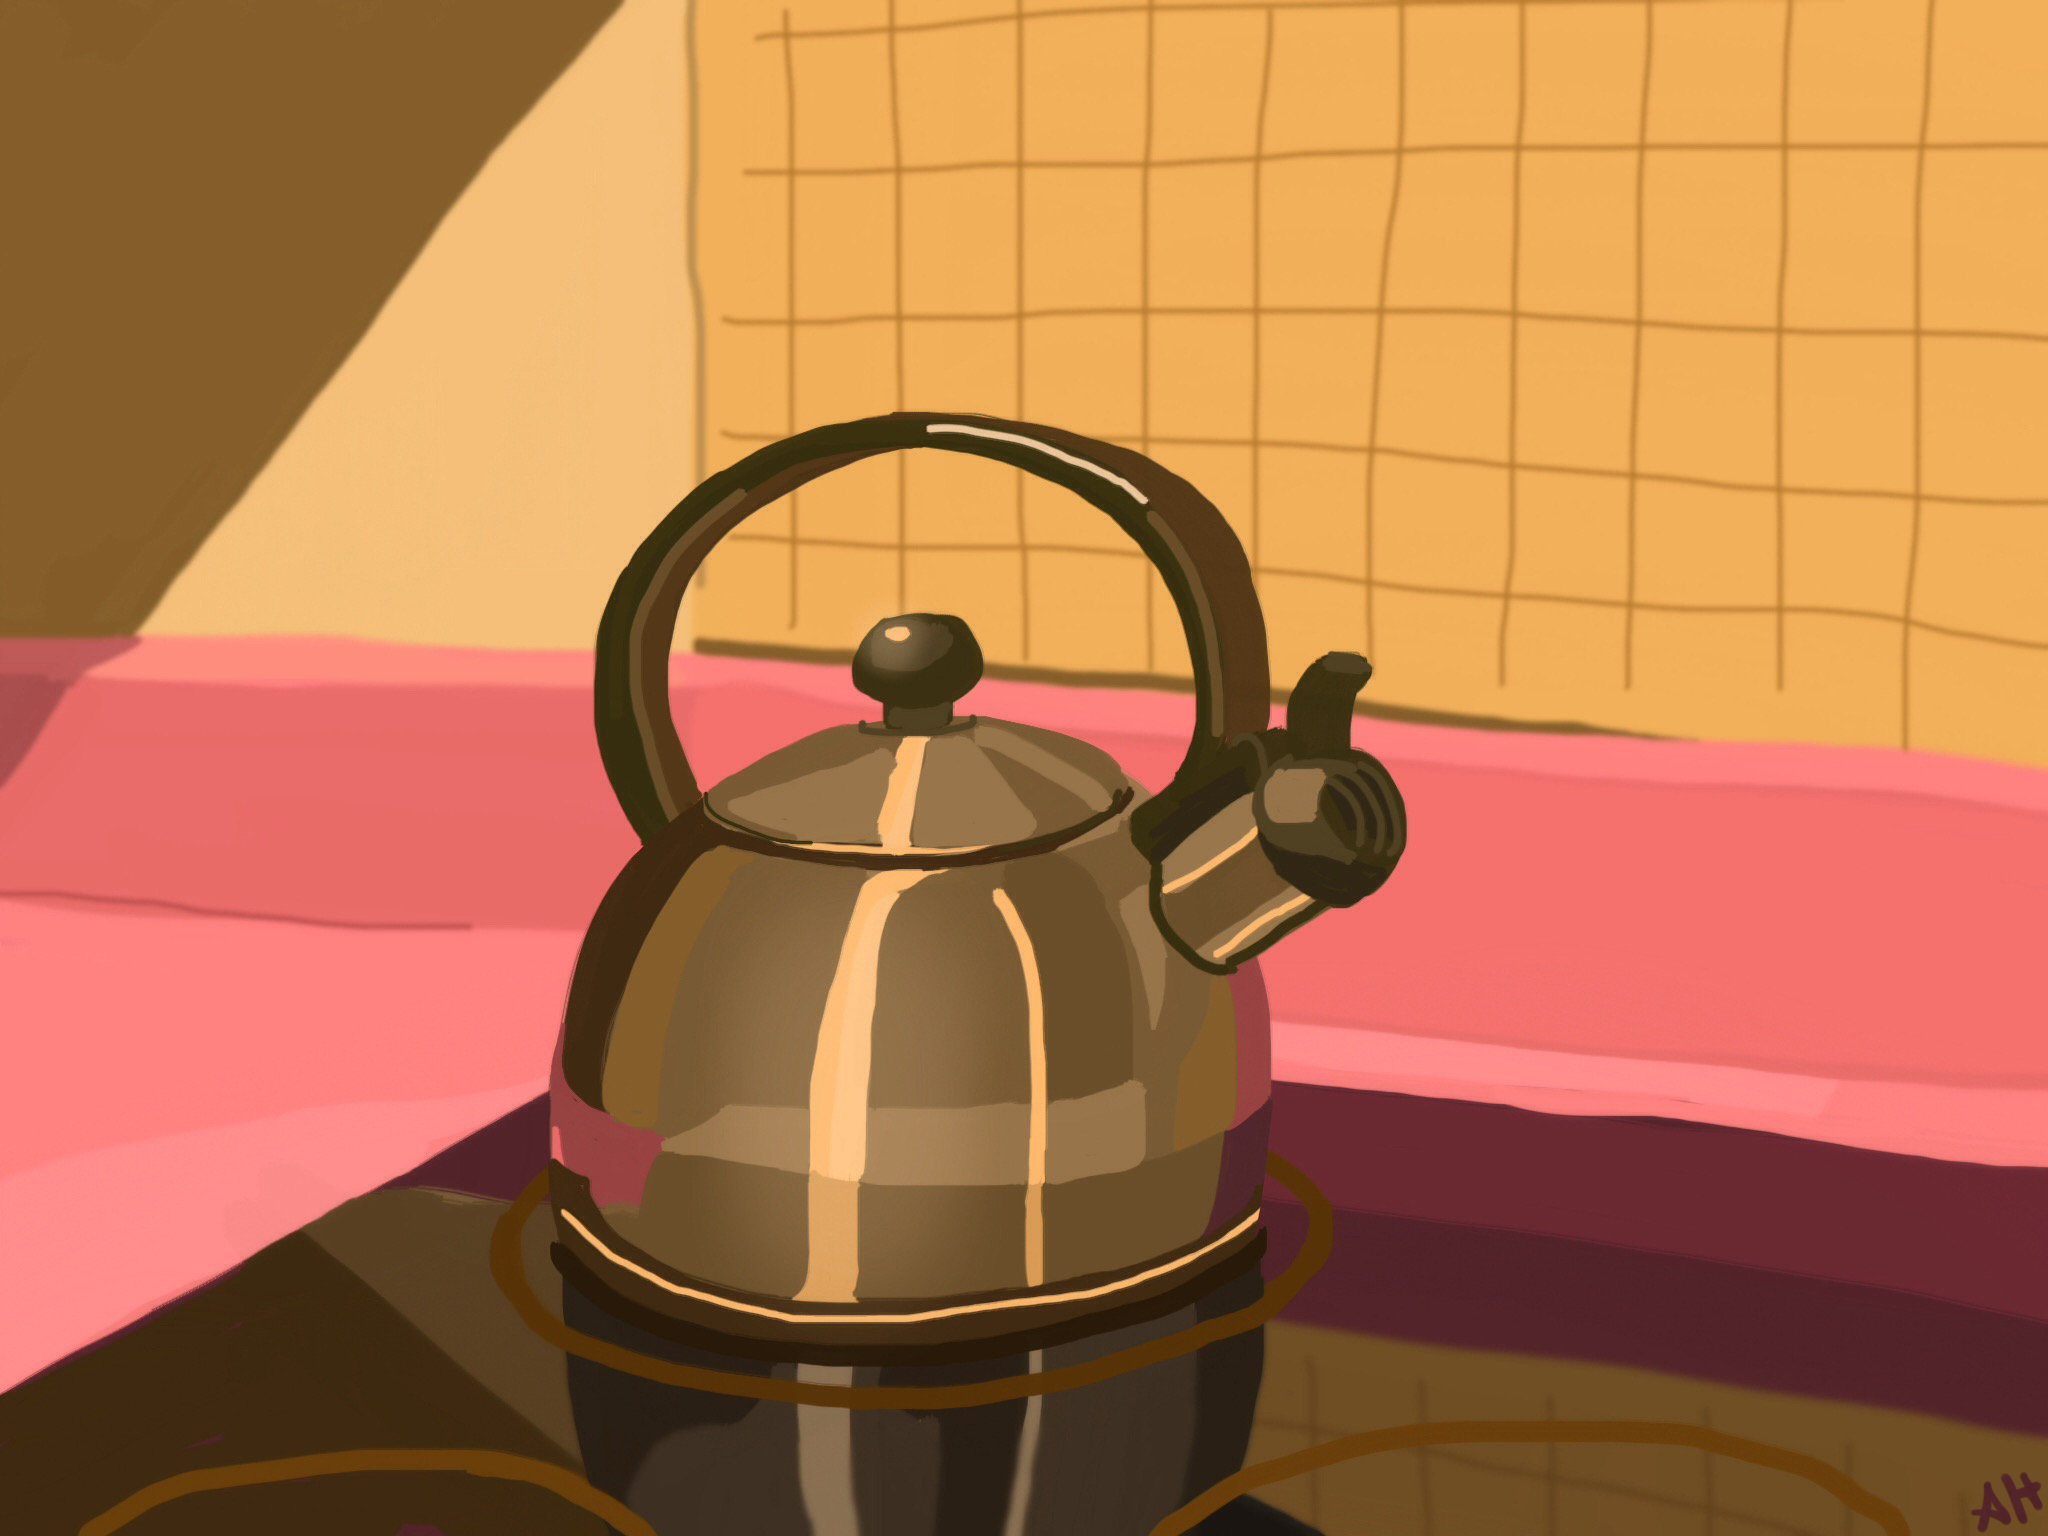 a digital sketch of teapot on a reflective stove by alleanna harris